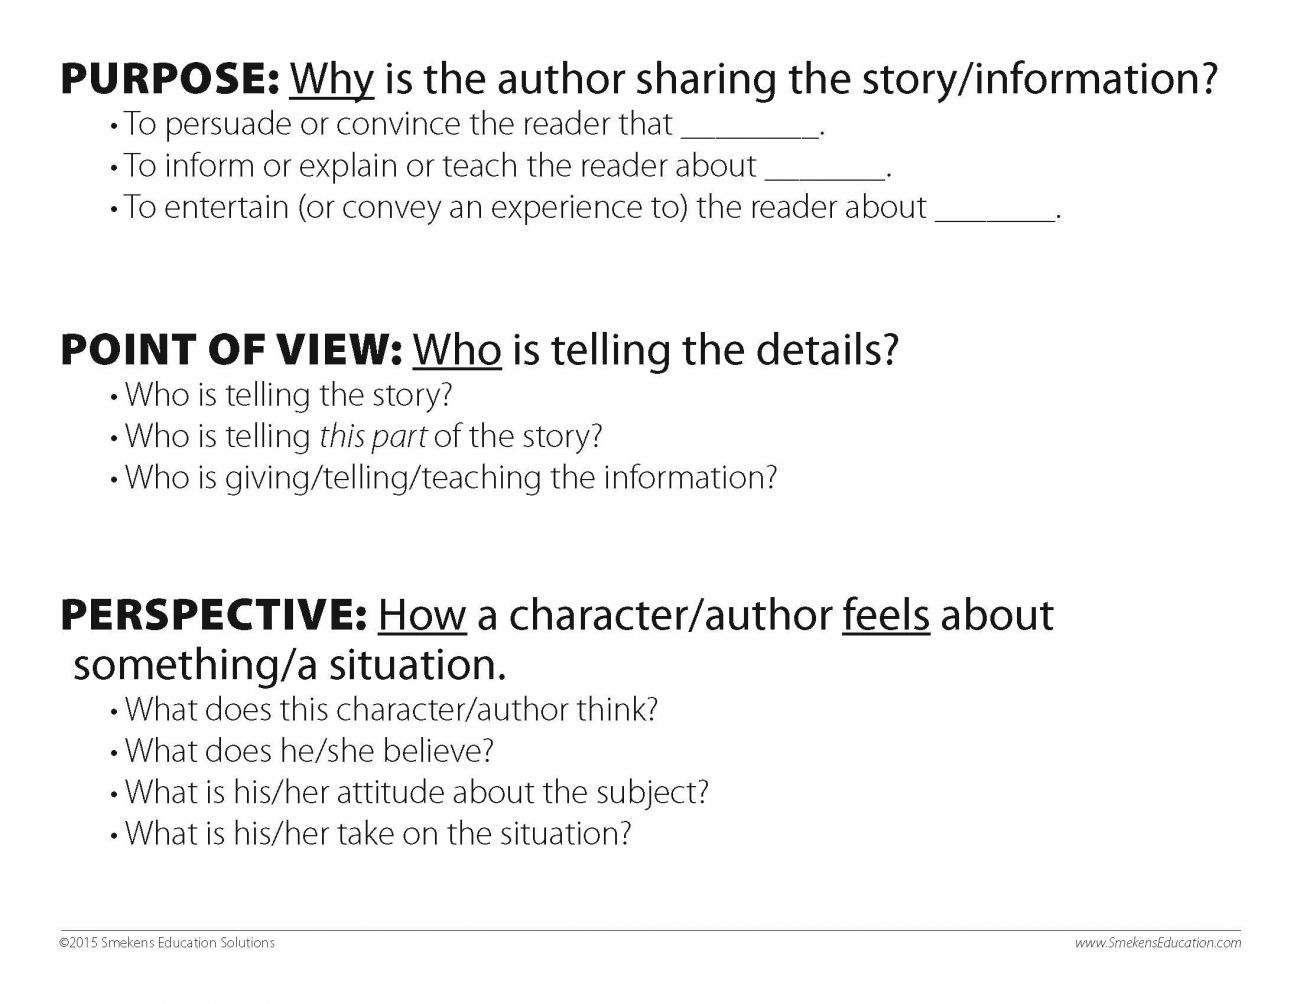 6 Traits of Writing – Professional Development - Clarify \u003cI\u003ePurpose\u003c/I\u003e  versus \u003cI\u003ePoint of View\u003c…   Authors perspective [ 1004 x 1300 Pixel ]